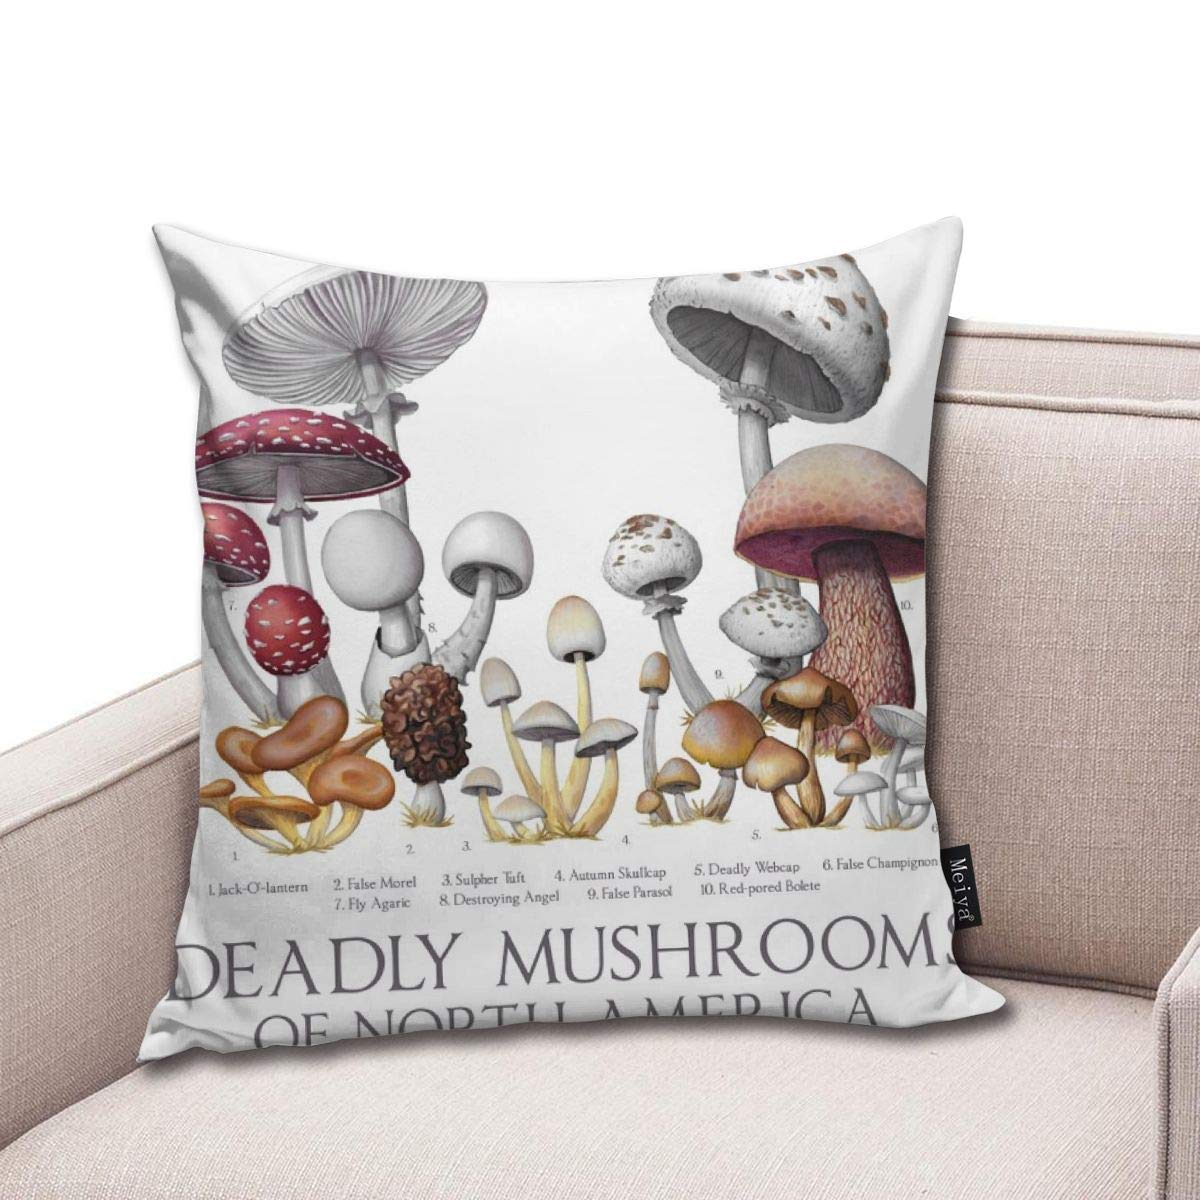 Deadly Mushrooms Of North America Throw Pillow Cover Square New Living Series Decorative Throw Pillow Case Double Side Design 18 X 18 Family Indoor Sofa Car